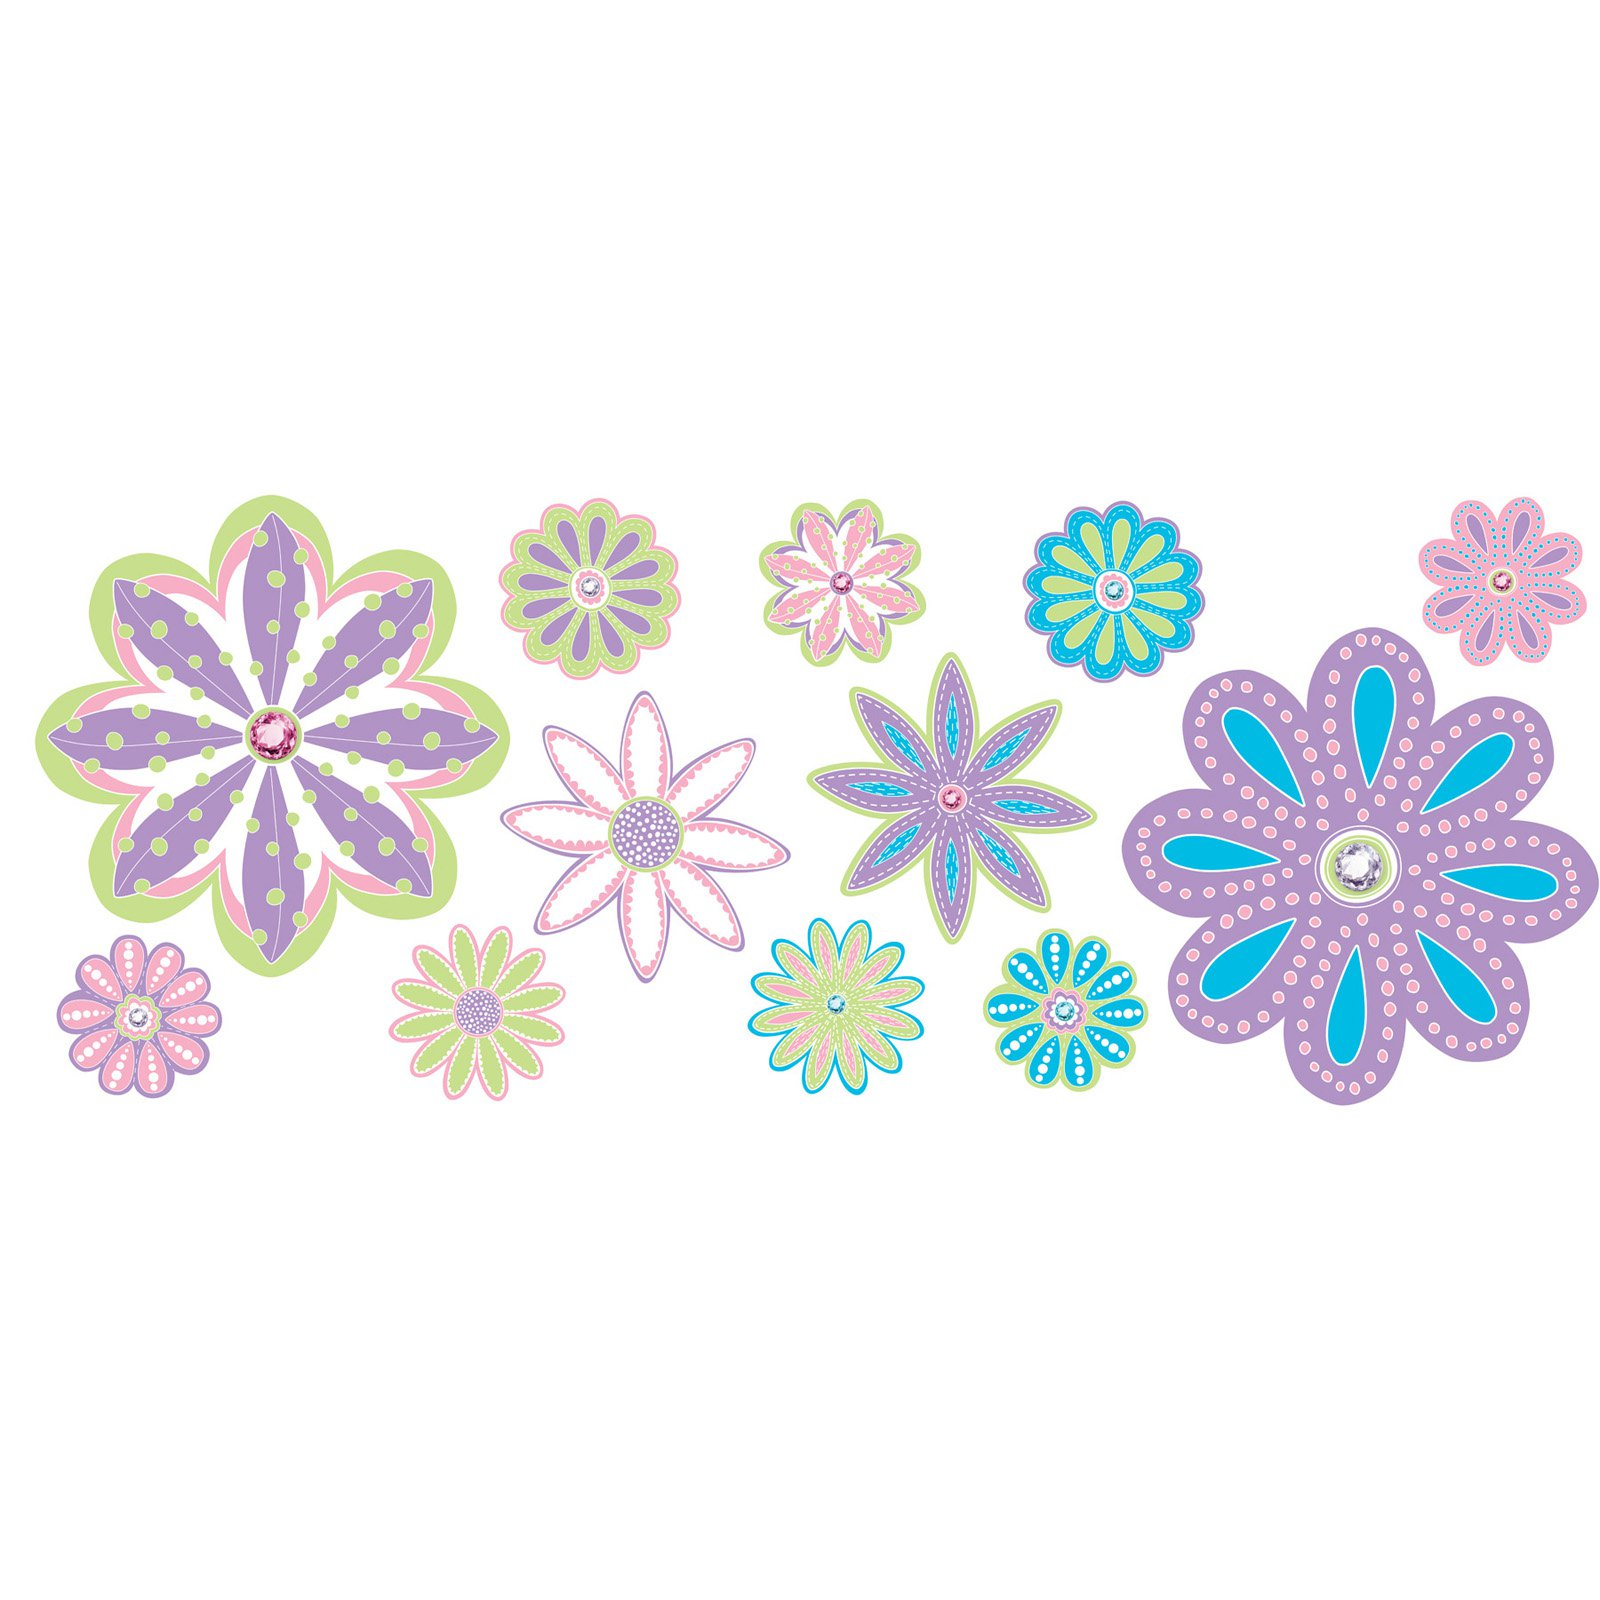 WallPops Patchwork Daisy Blox Wall Decal - Set of 8